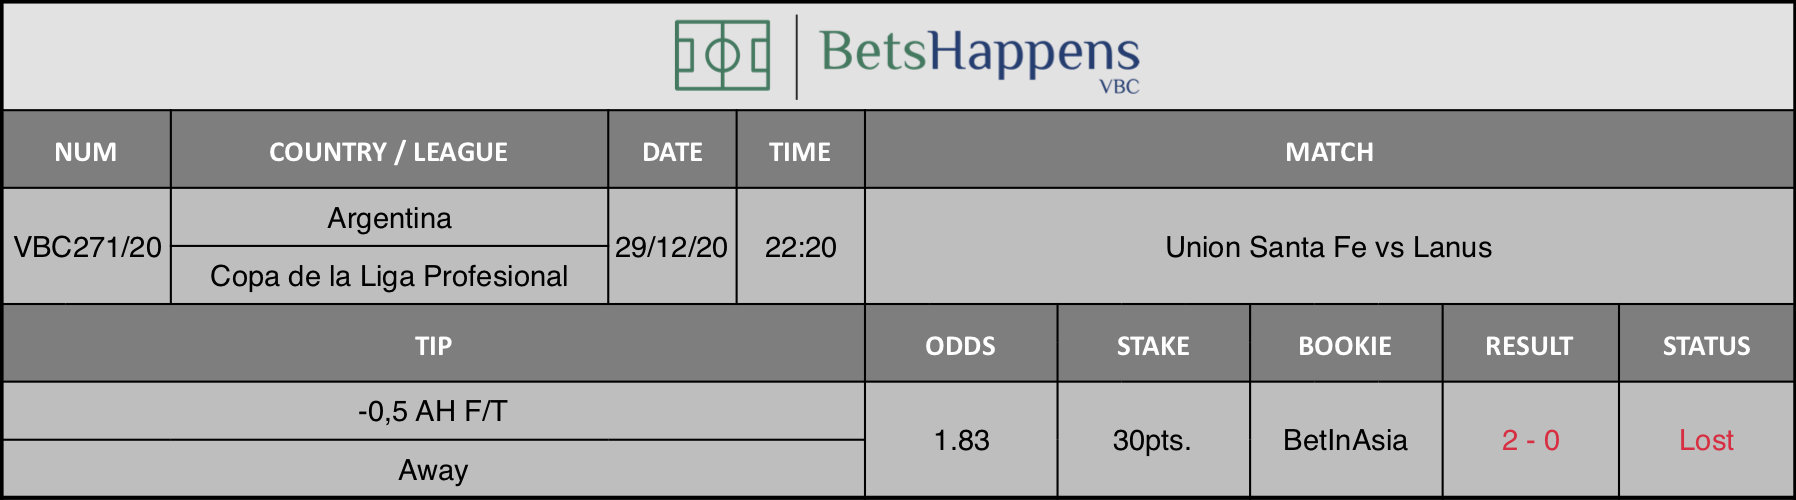 Results of our tip for the Union Santa Fe vs Lanus match where -0,5 AH F/T Away is recommended.